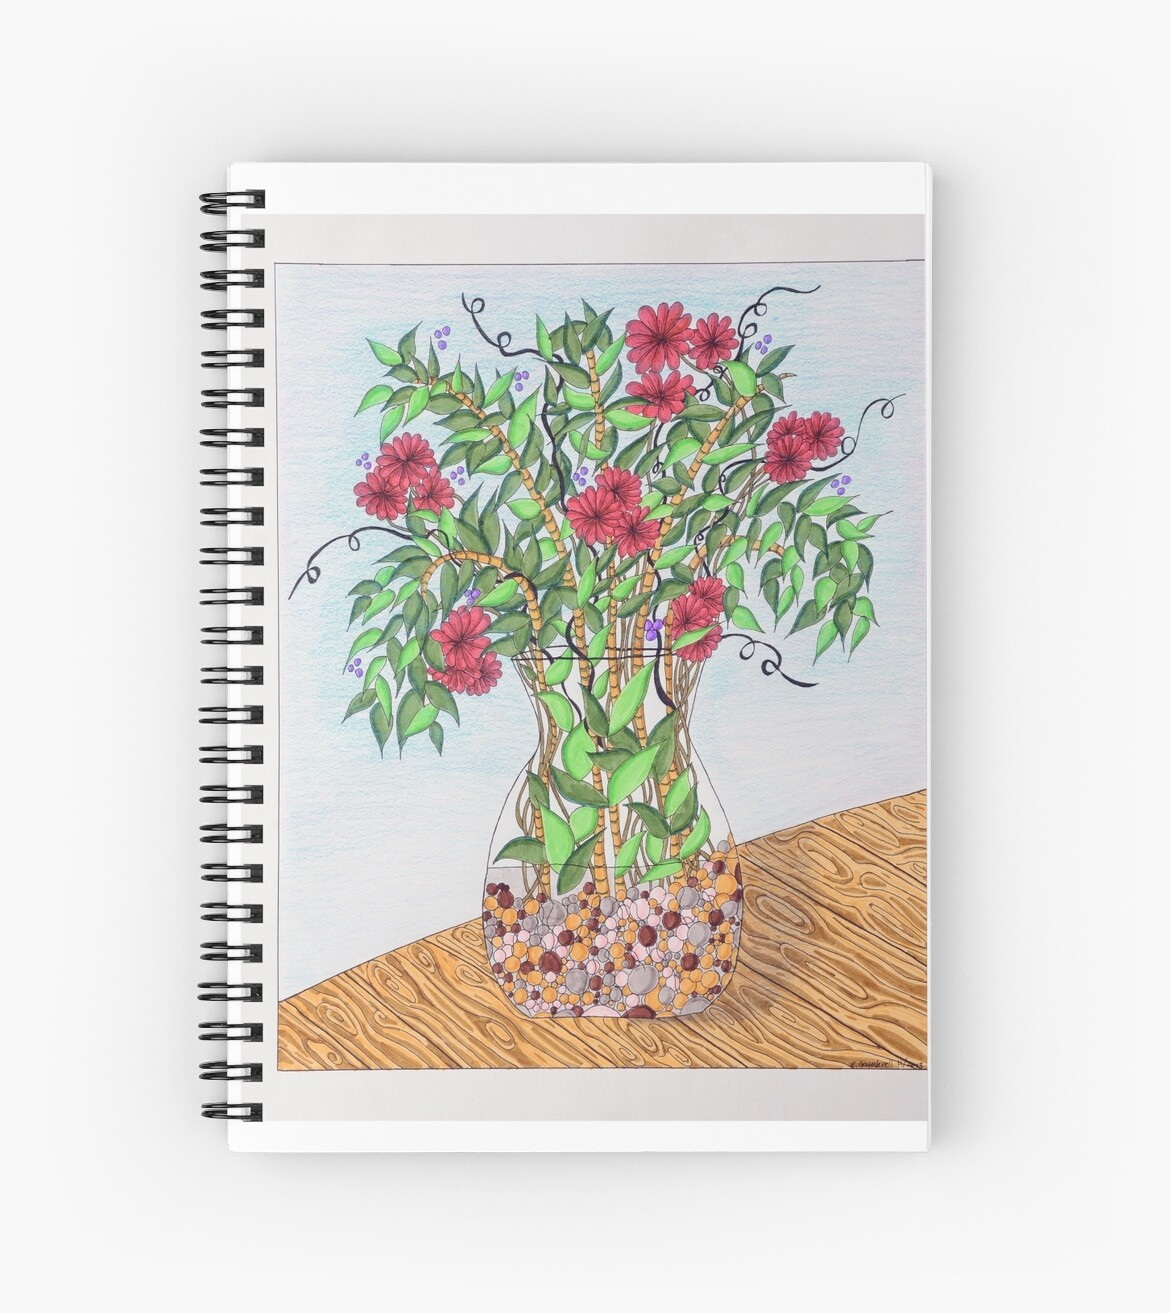 Flowers/21 - Clear Vase with Pebbles/1 by EllenGambrell